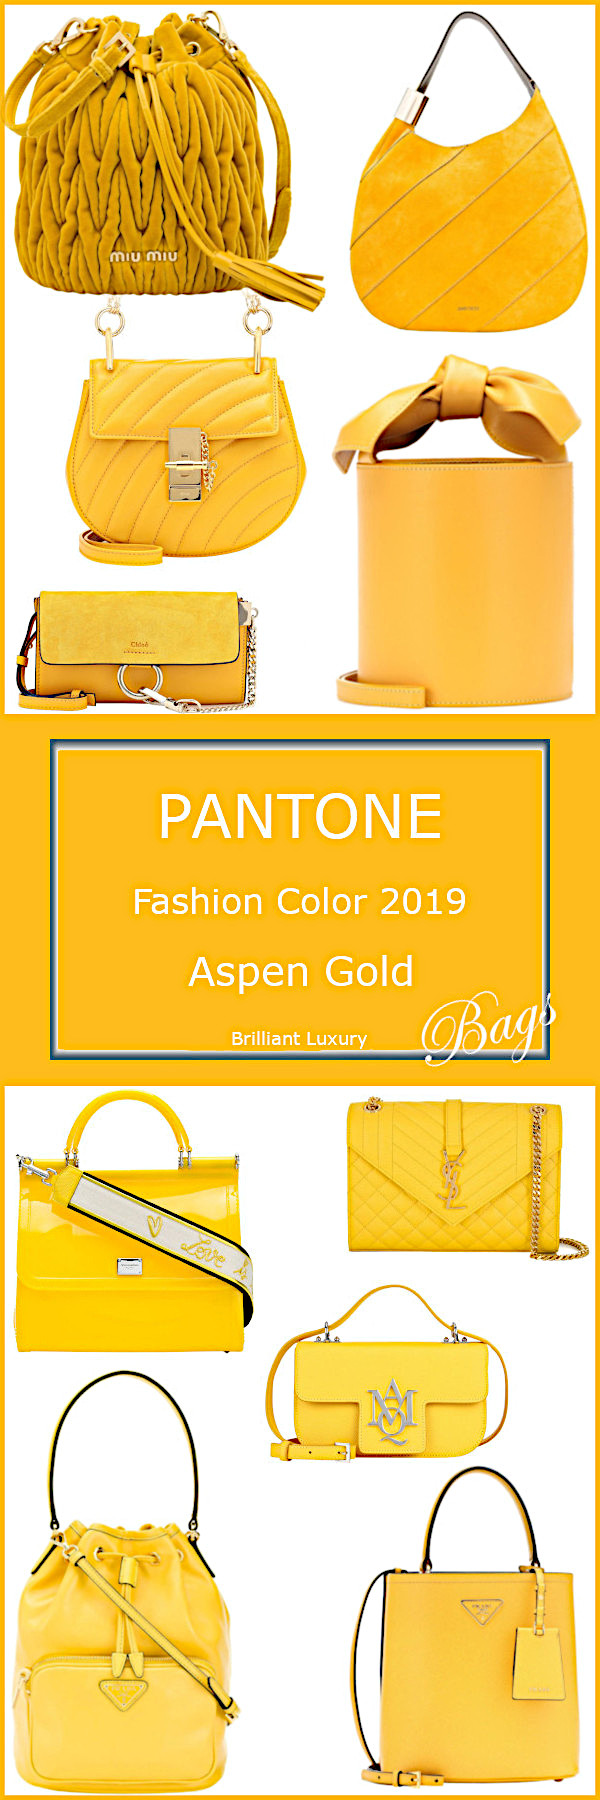 Pantone Color Aspen Gold Bags